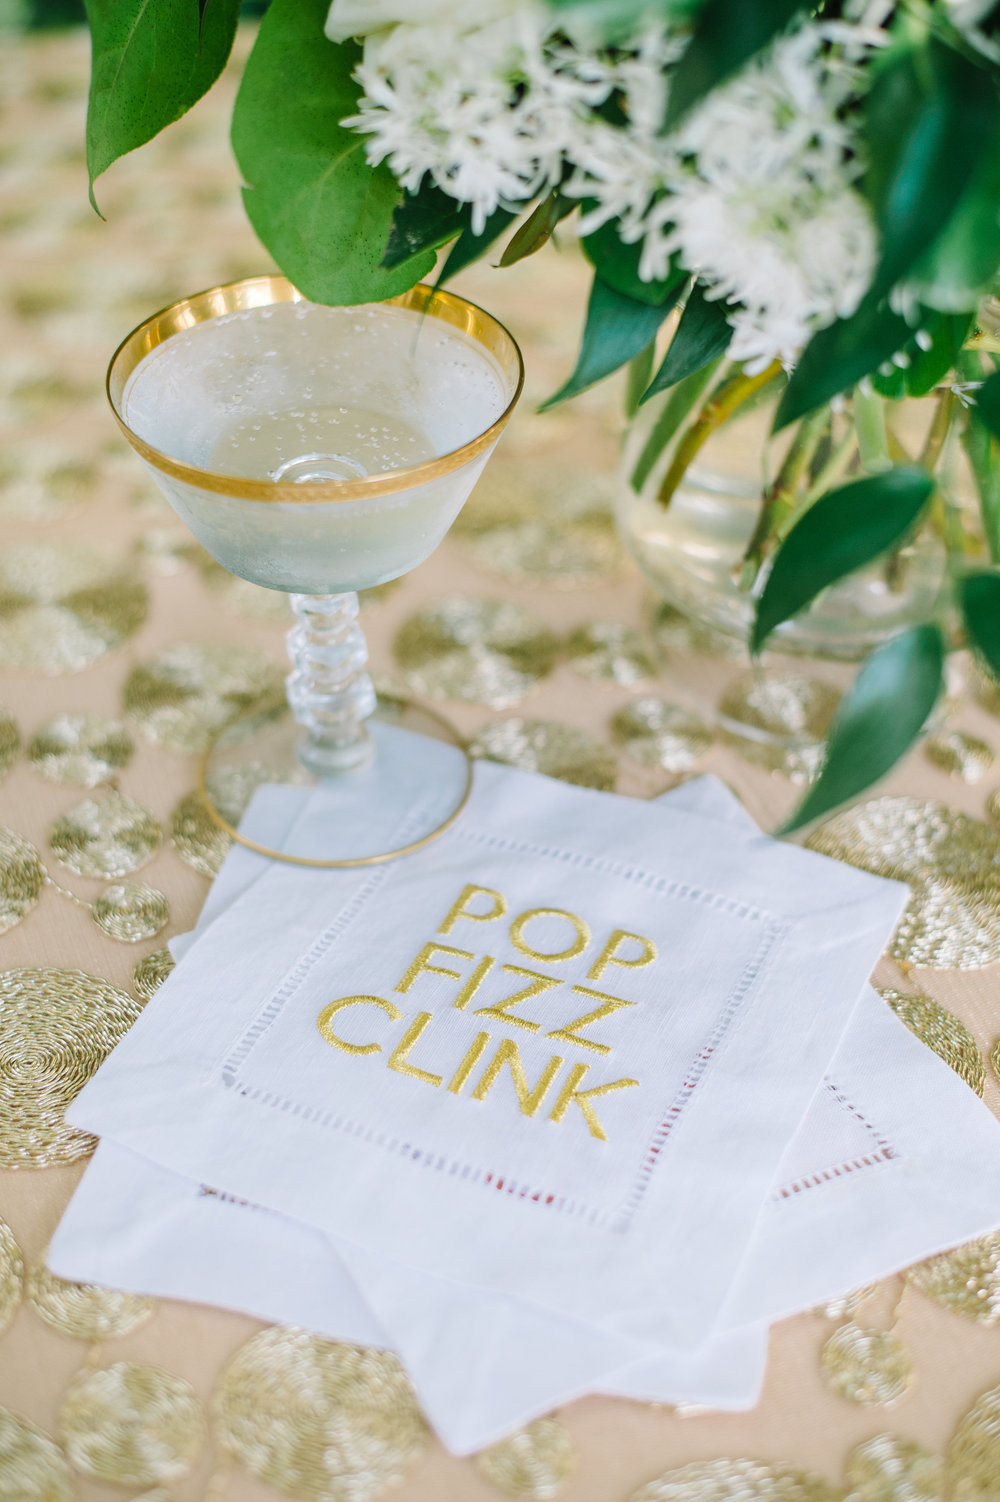 made-on-marlow-pop-fizz-clink-cocktail-napkins-the-knot-market-mixer-cannon-green-charleston-wedding